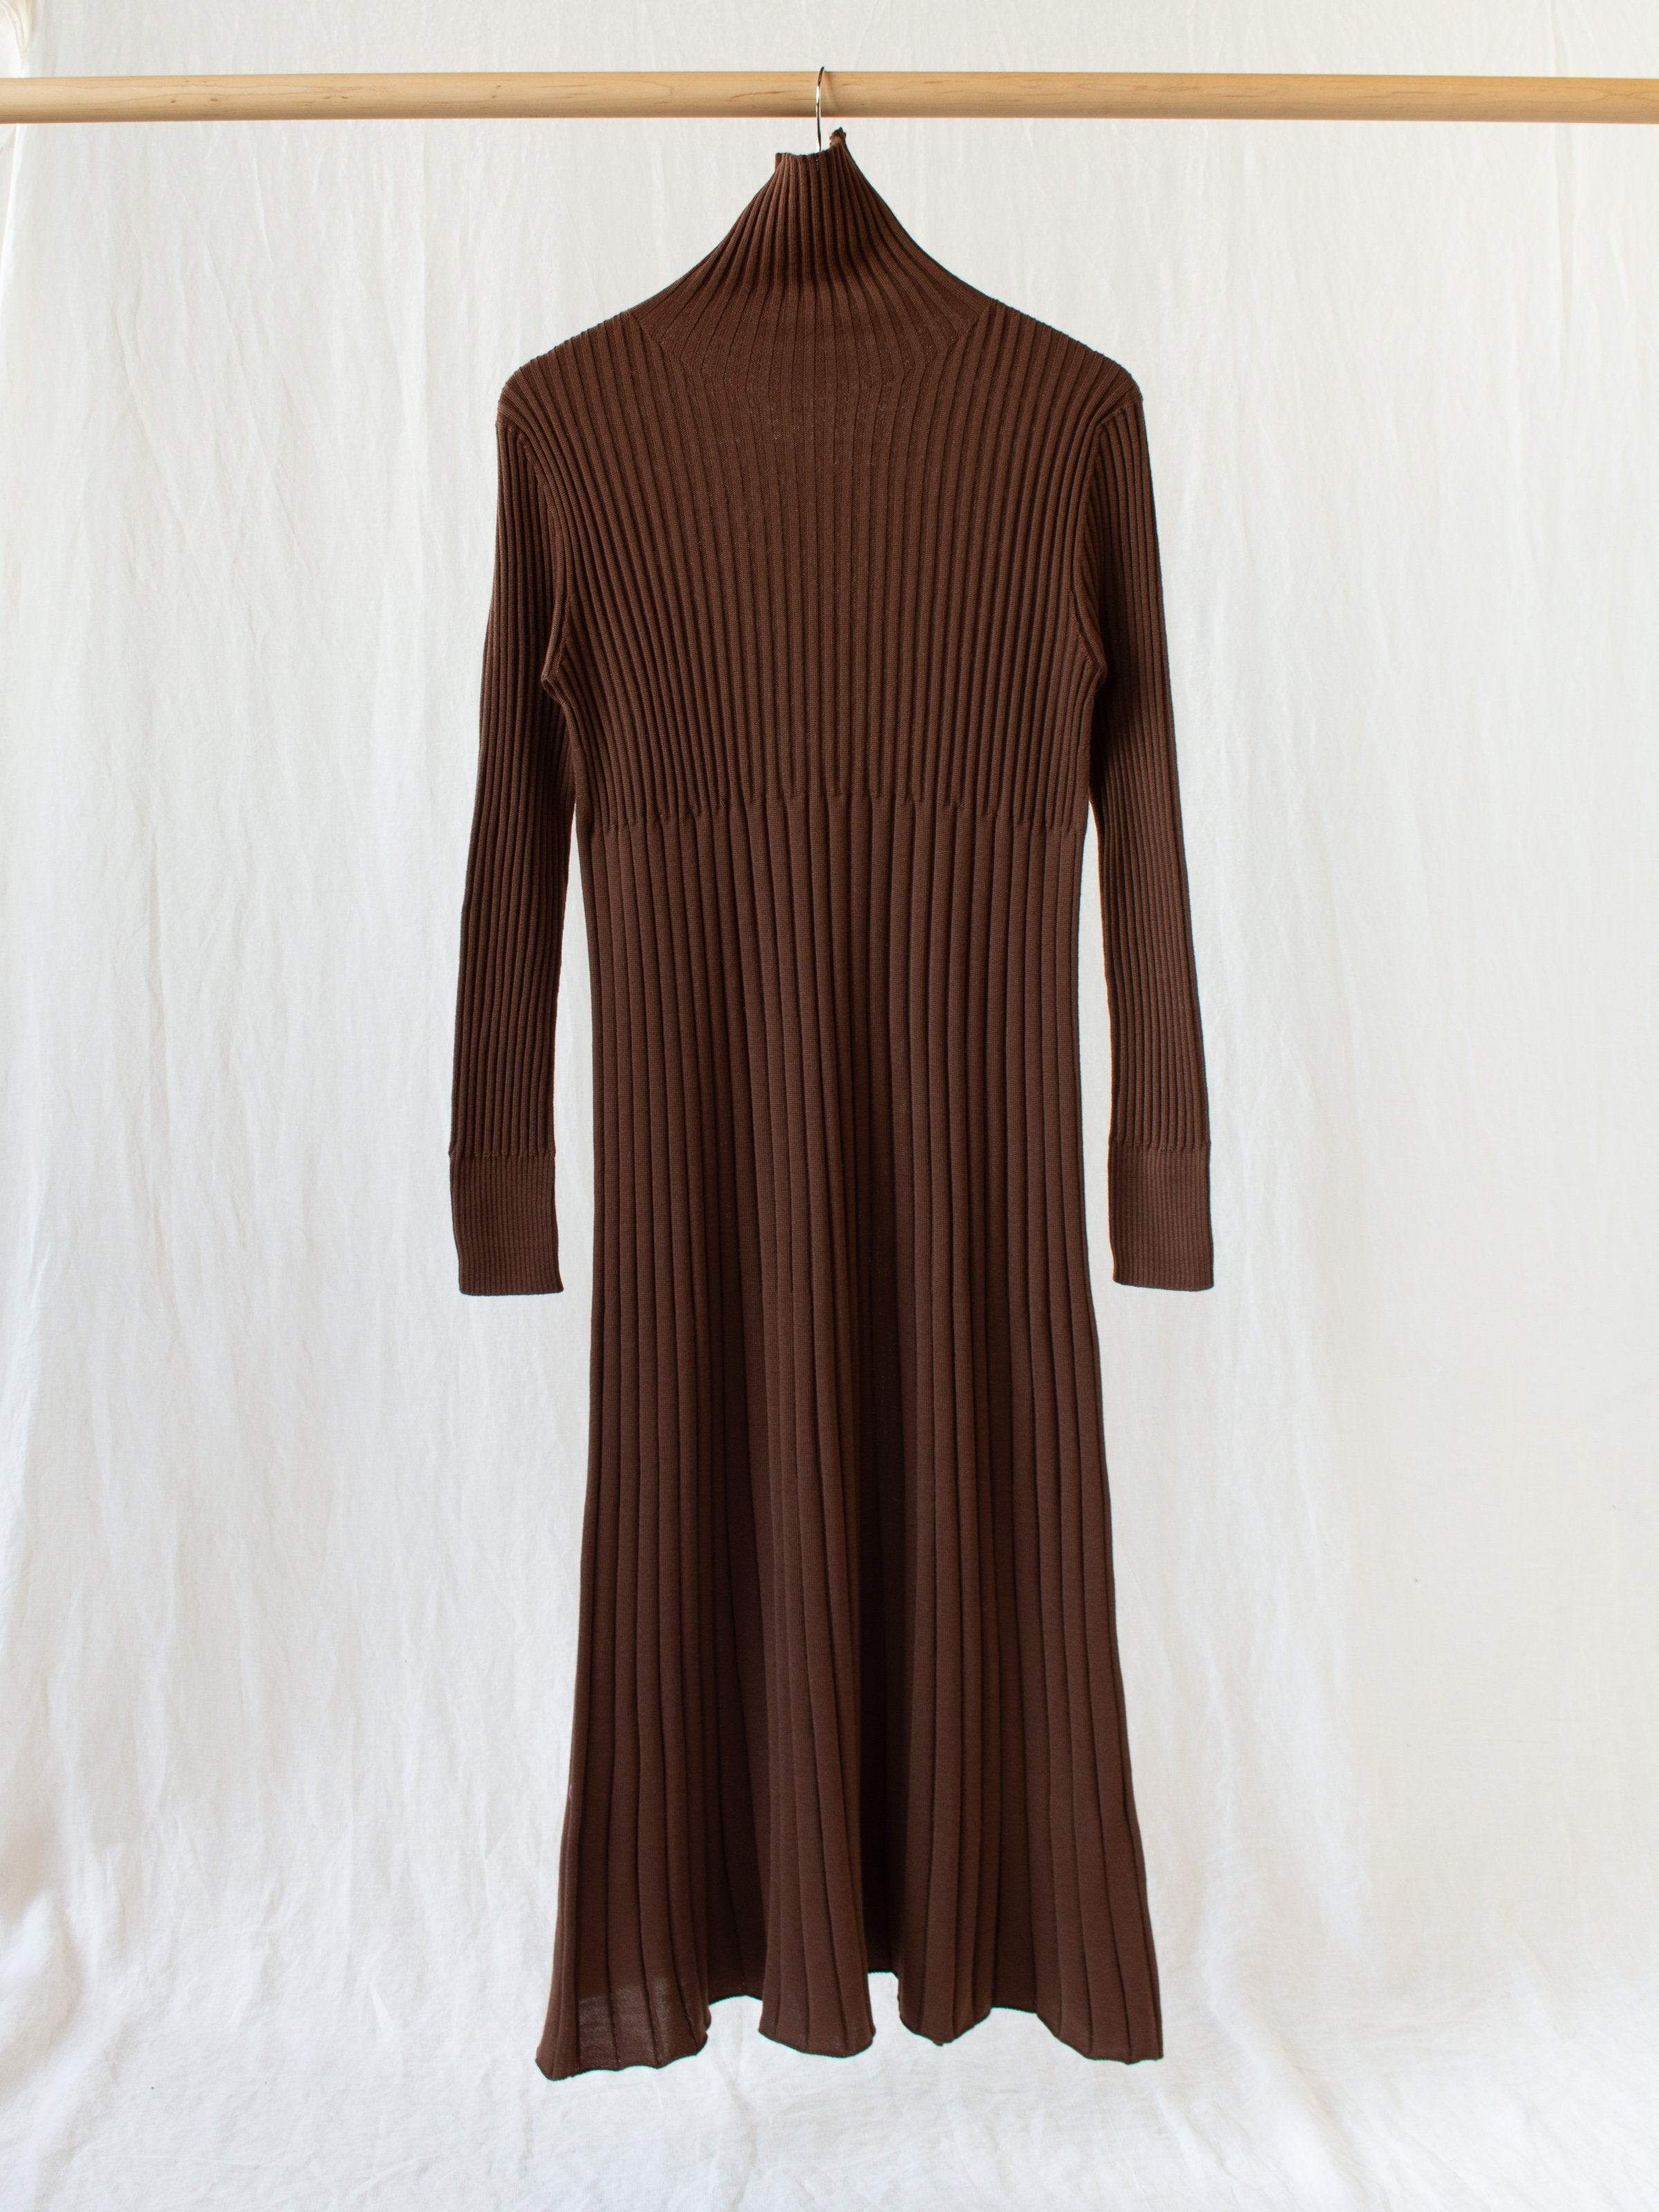 Namu Shop - Phlannel Wool Wide Rib Knit Dress - Maroon Brown